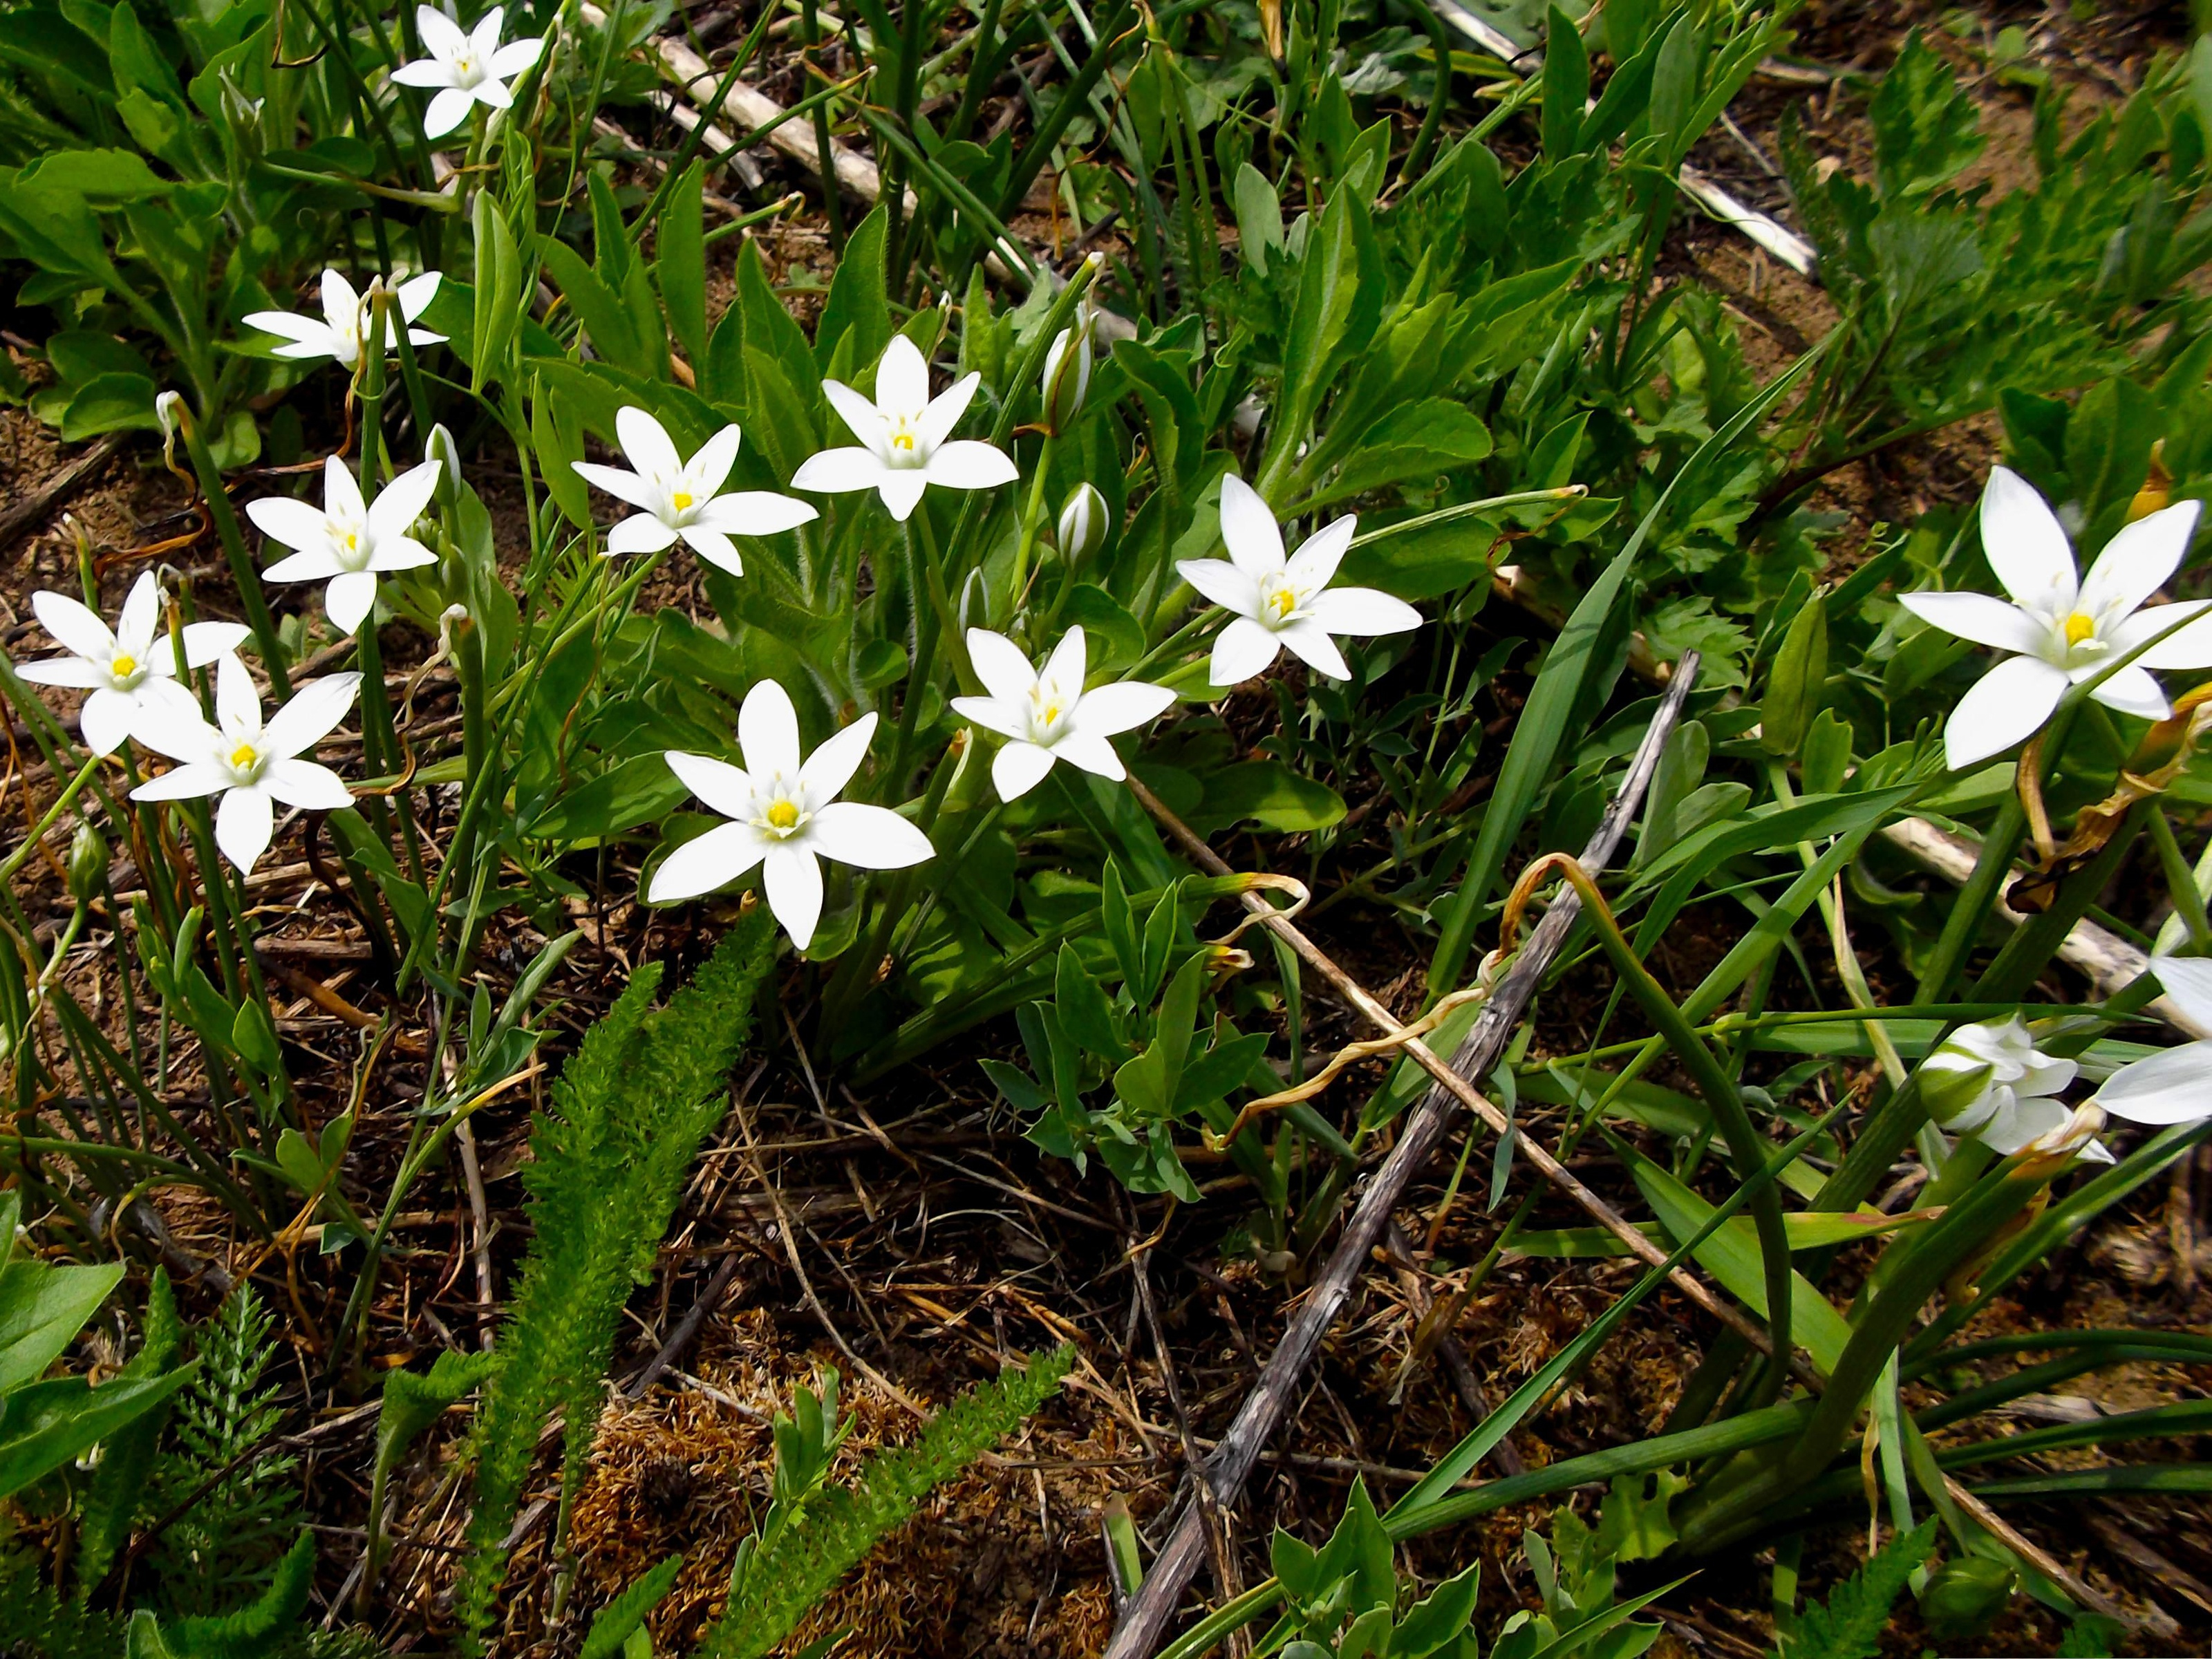 Dexter Flowers Picture Tiny White Flowers Around Green Grass Nice